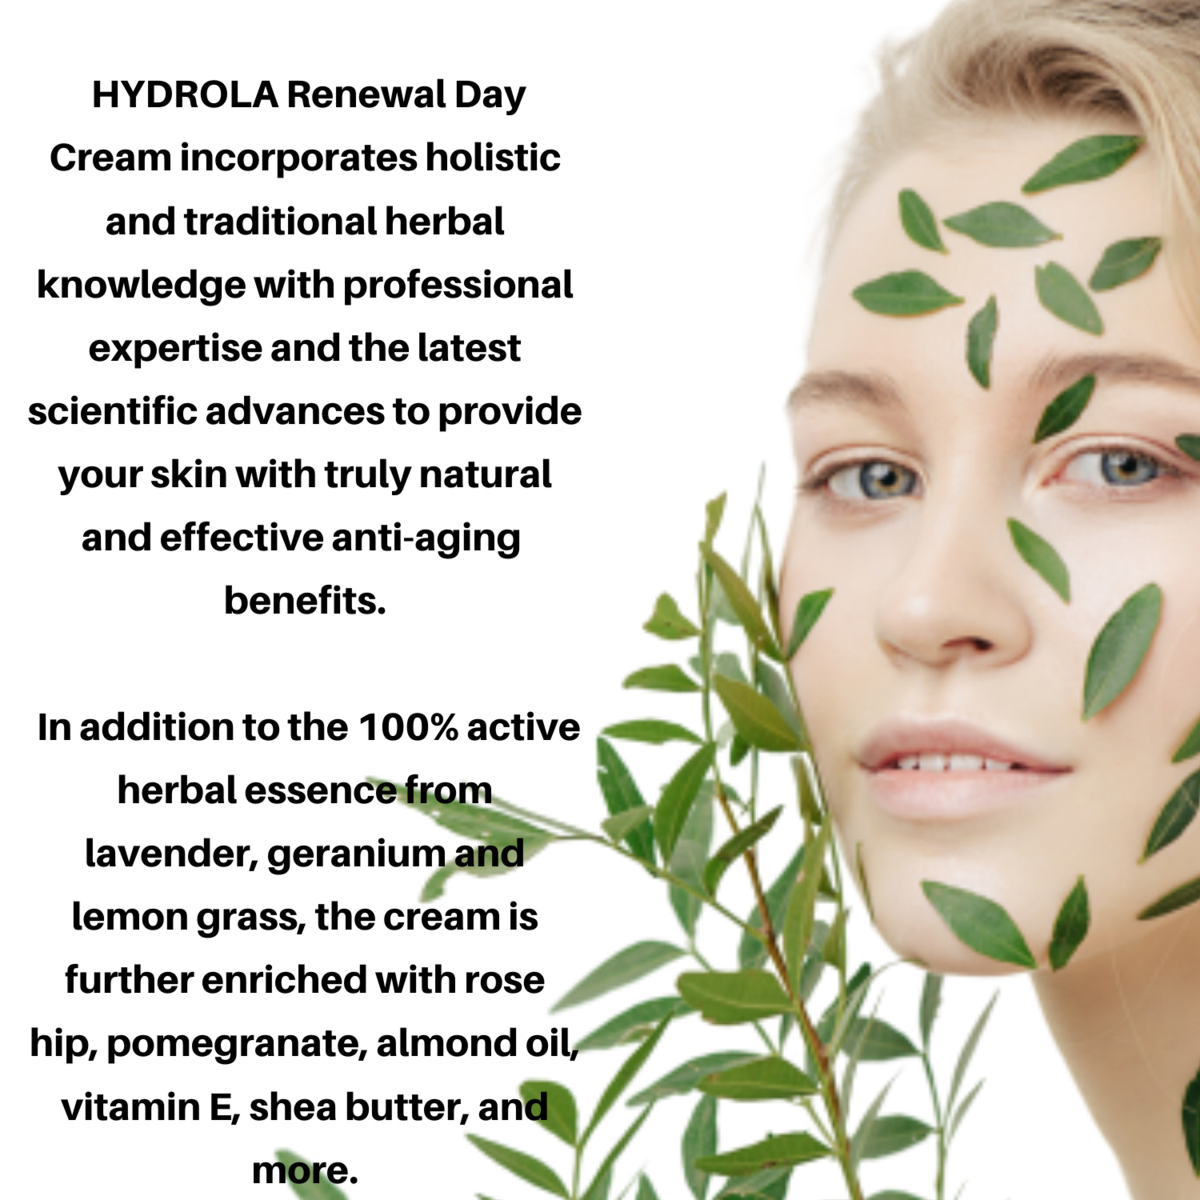 HYDROLA RENEWAL DAY CREAM: best natural & organic daily face moisturizer cream. Anti-aging & anti-wrinkle cream. With vitamin E, shea butter, pomegranates, almonds and rose hip oils